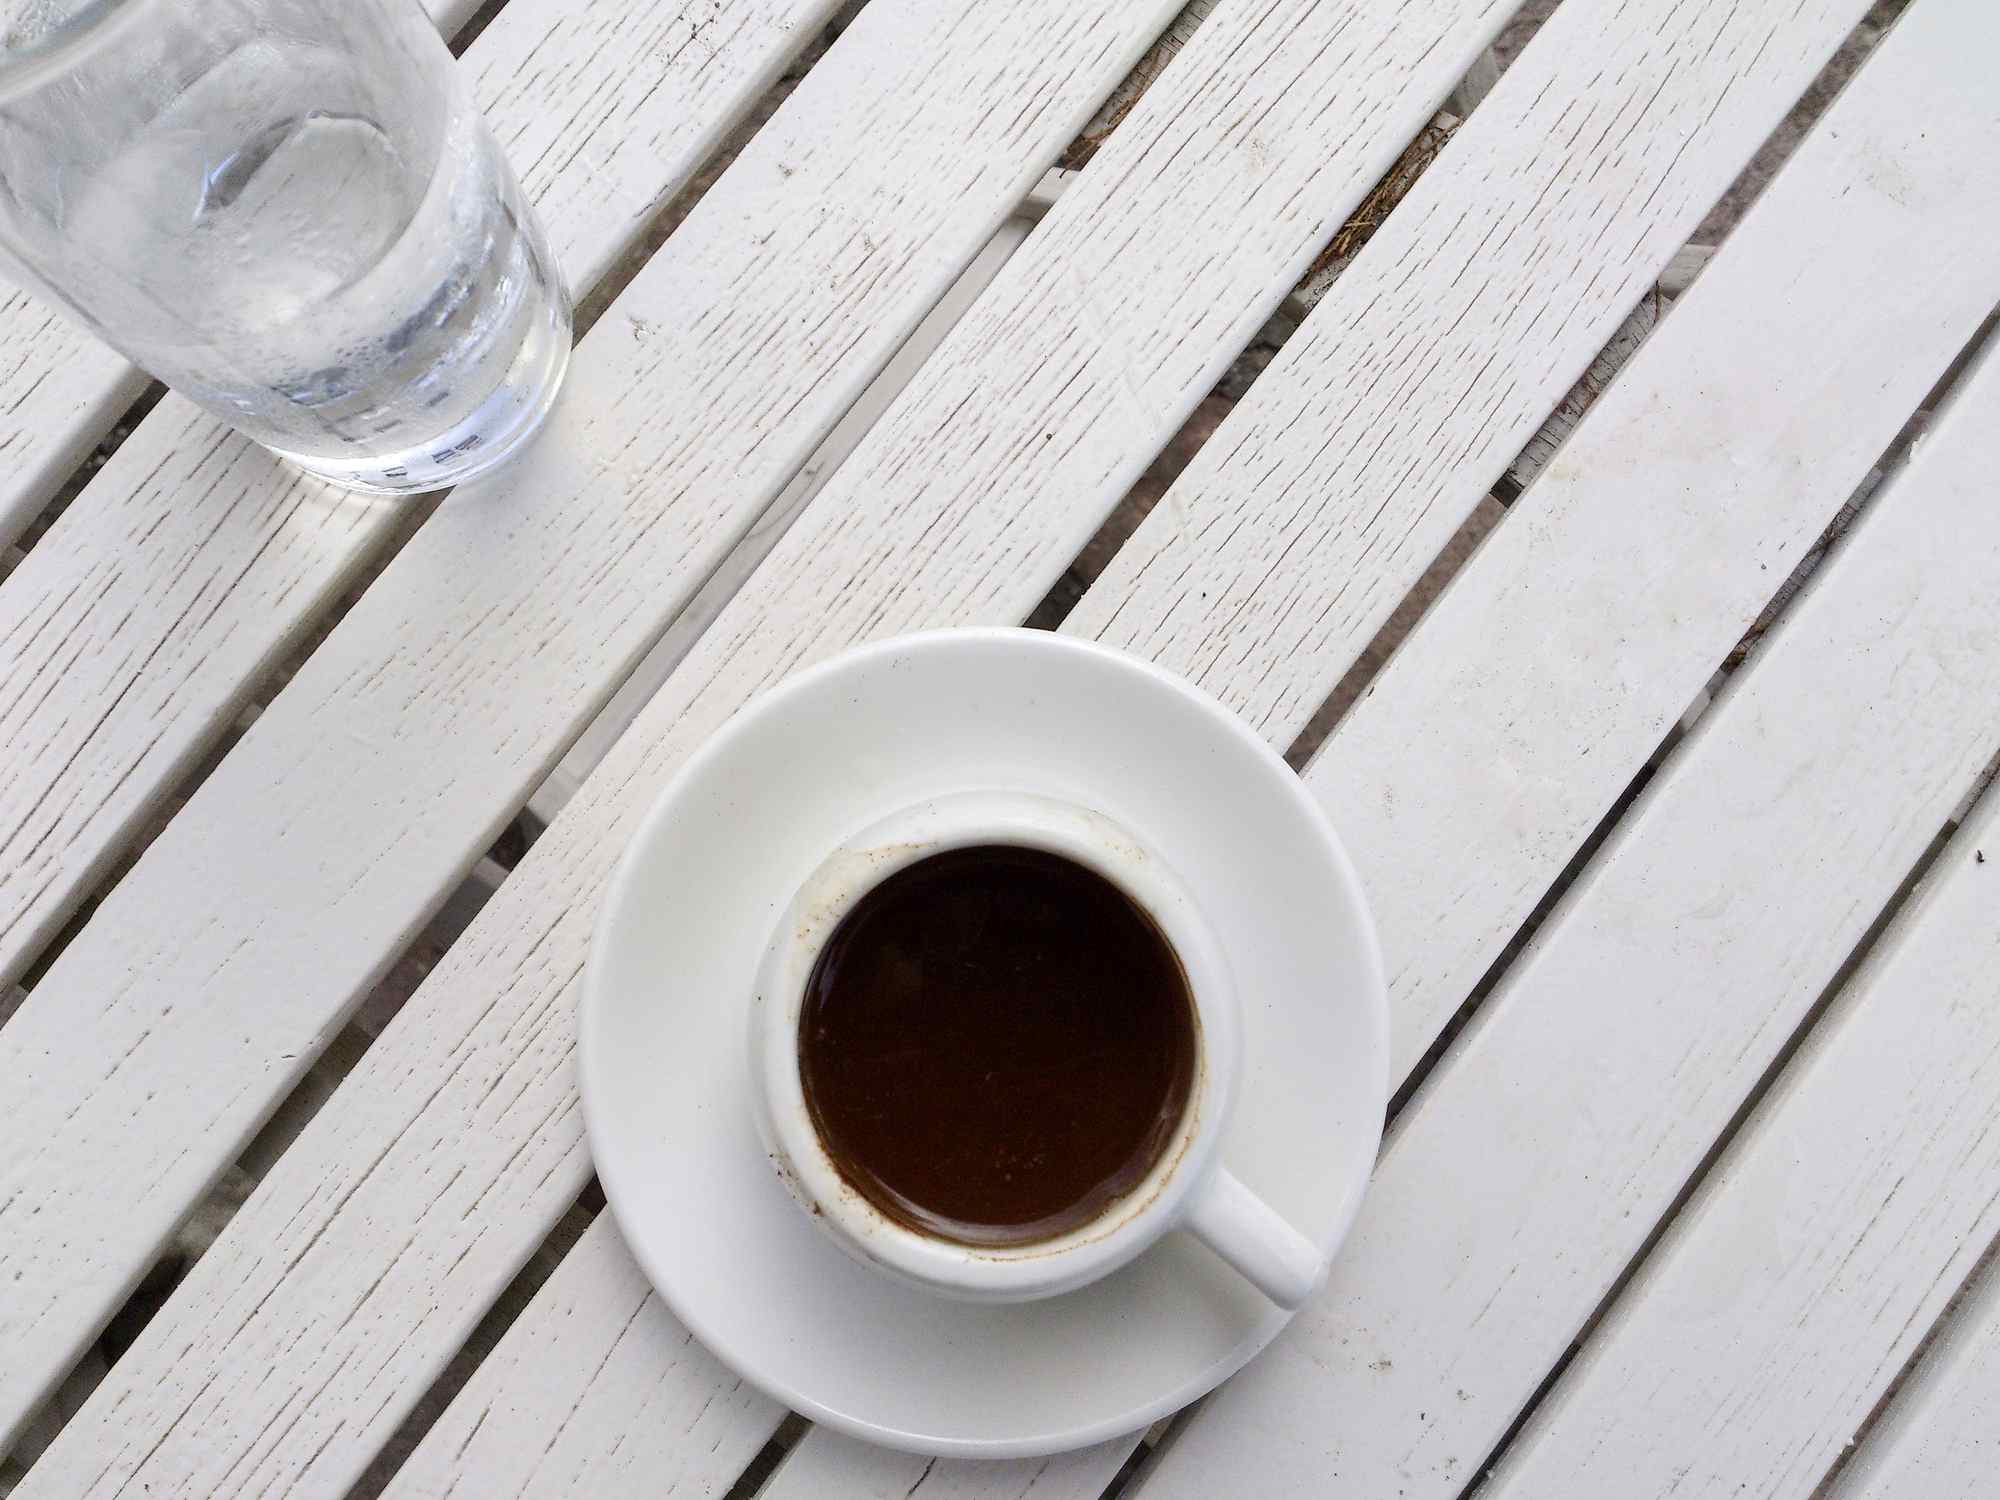 Greek coffee with water